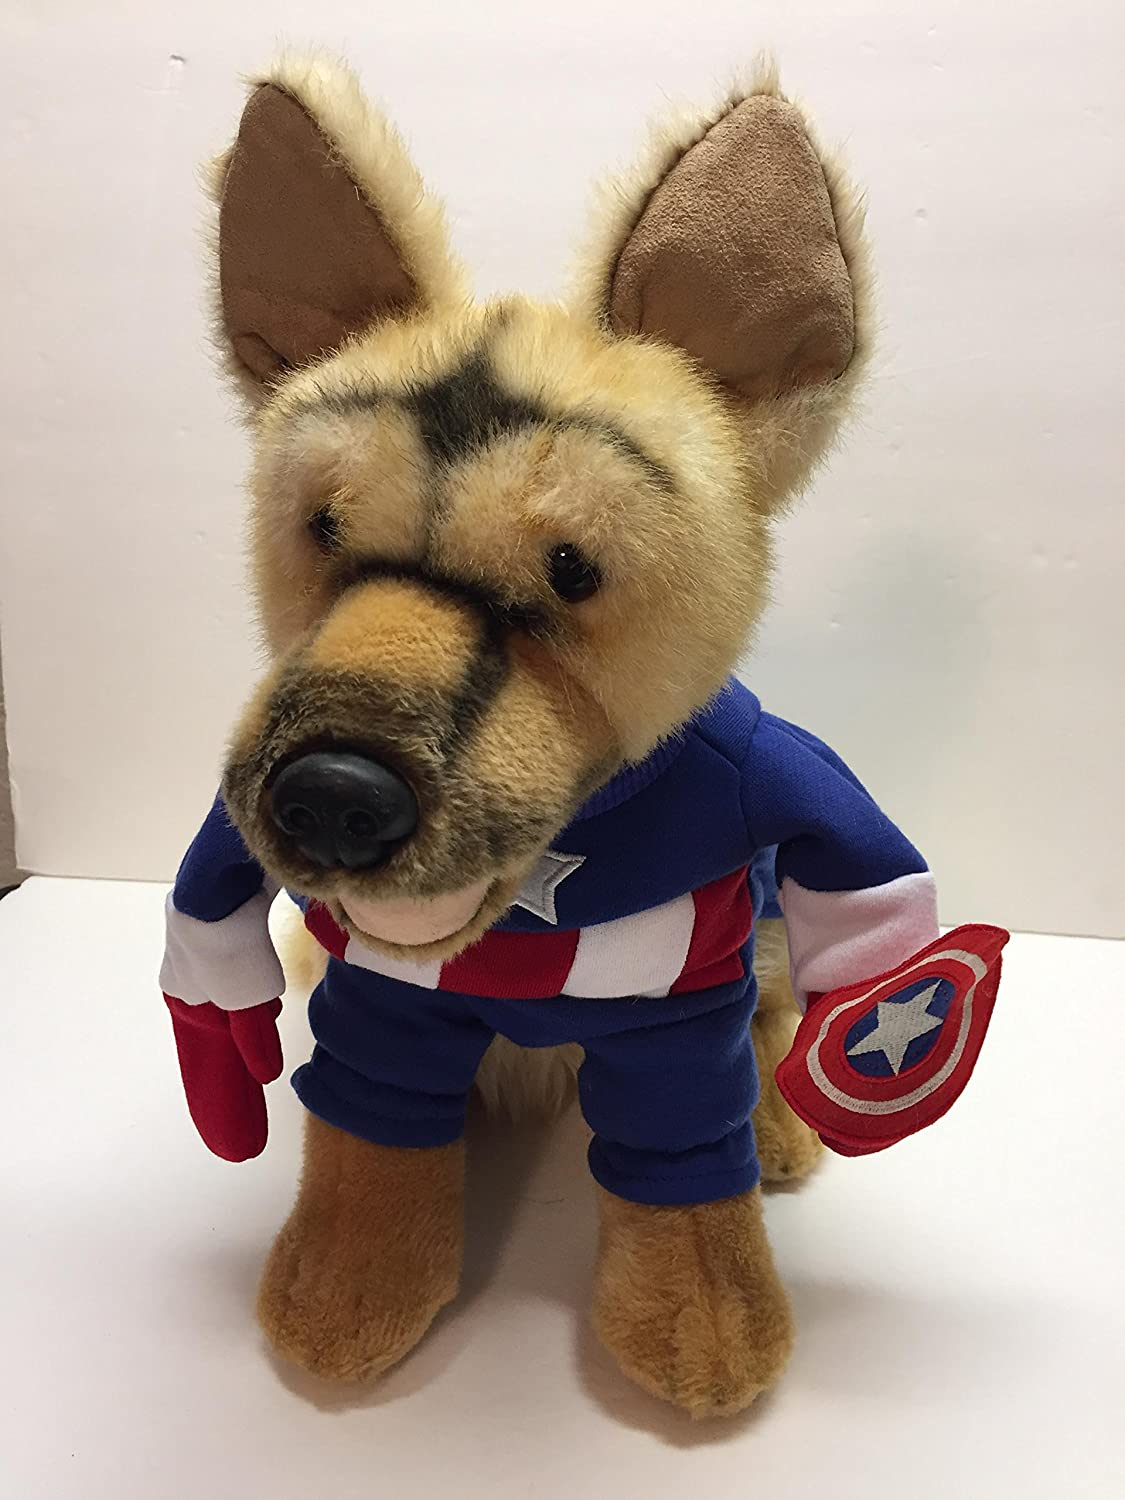 Amazon Com Captain America Marvel Dog Costume Small Pet Supplies He can lead the avengers on a quest to save the world in this cute iron man costume for dogs. amazon com captain america marvel dog